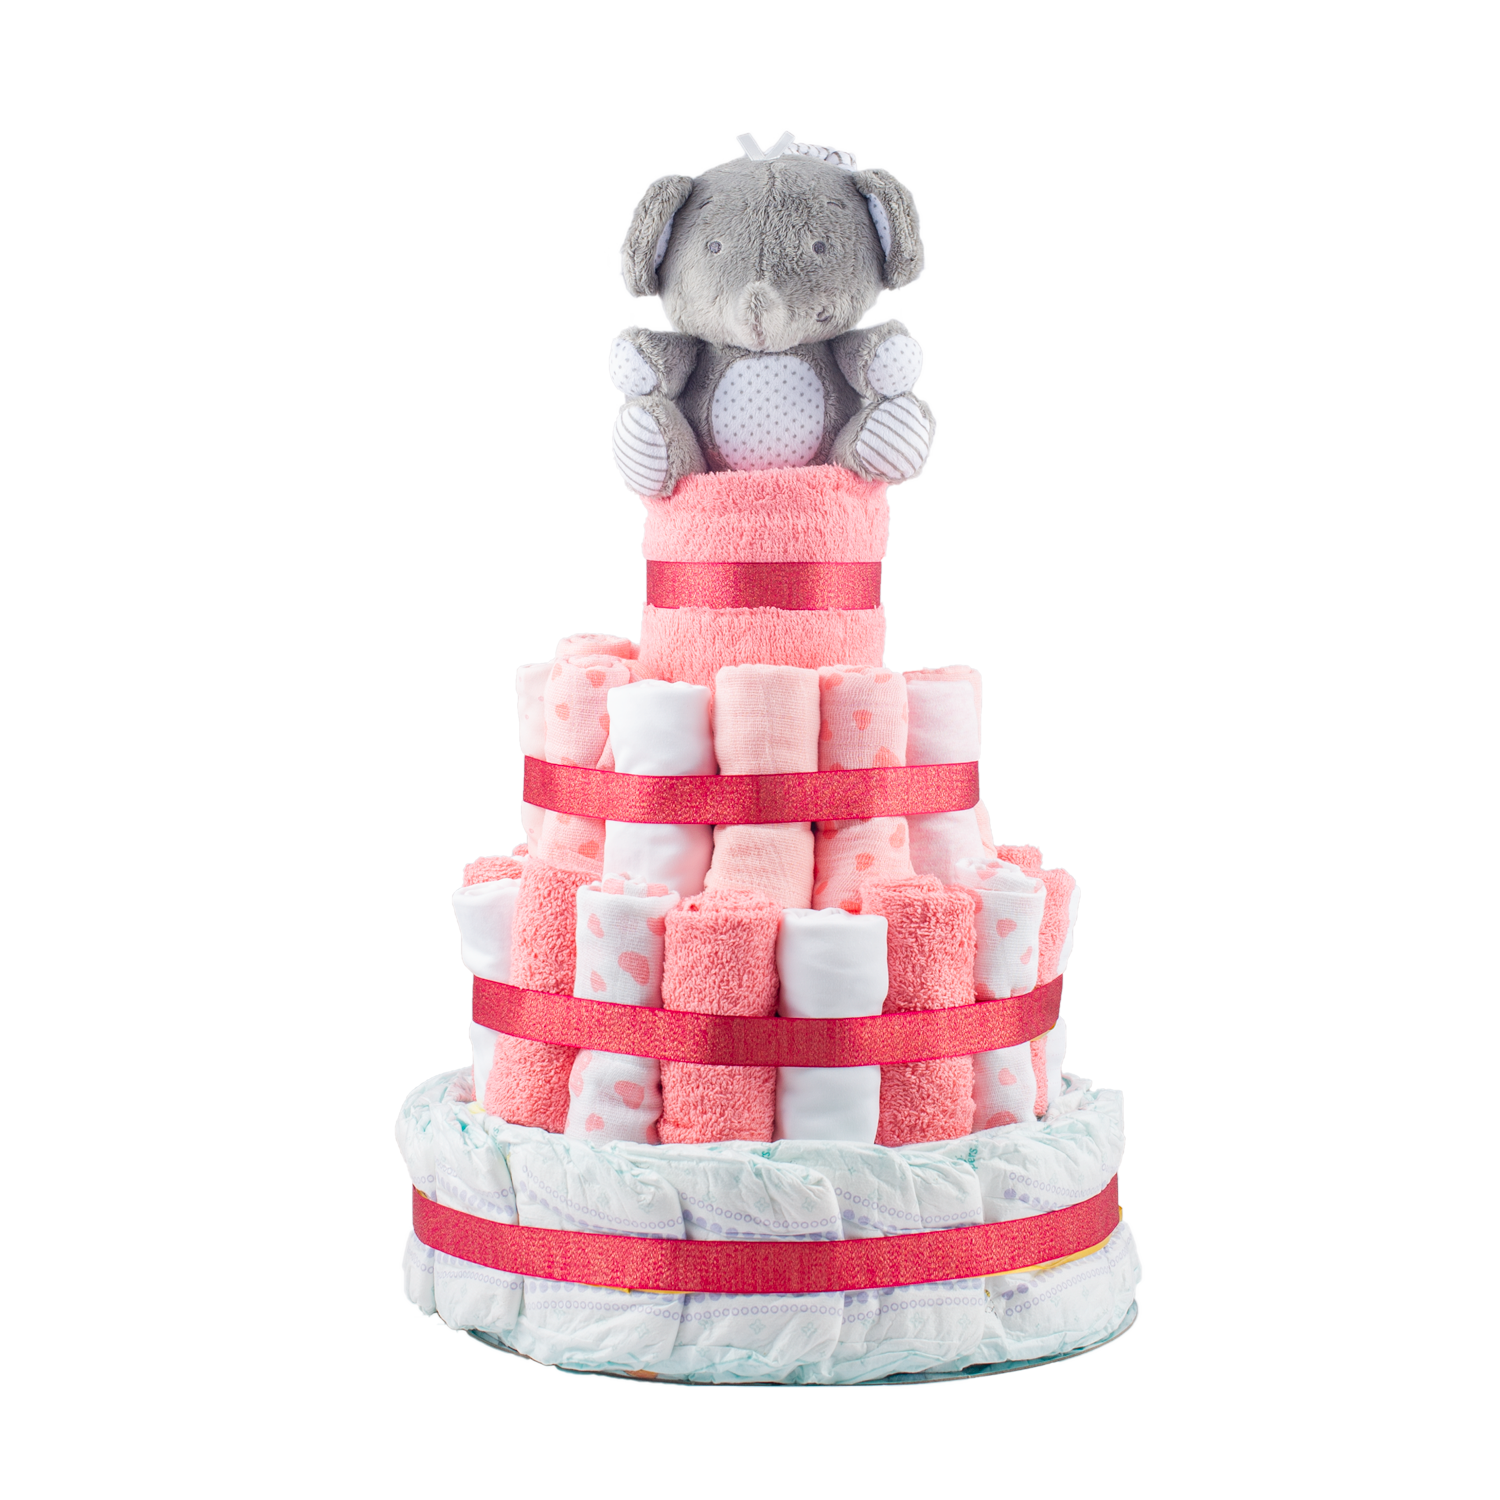 Stylish 4-Tier Pink Nappy Cake